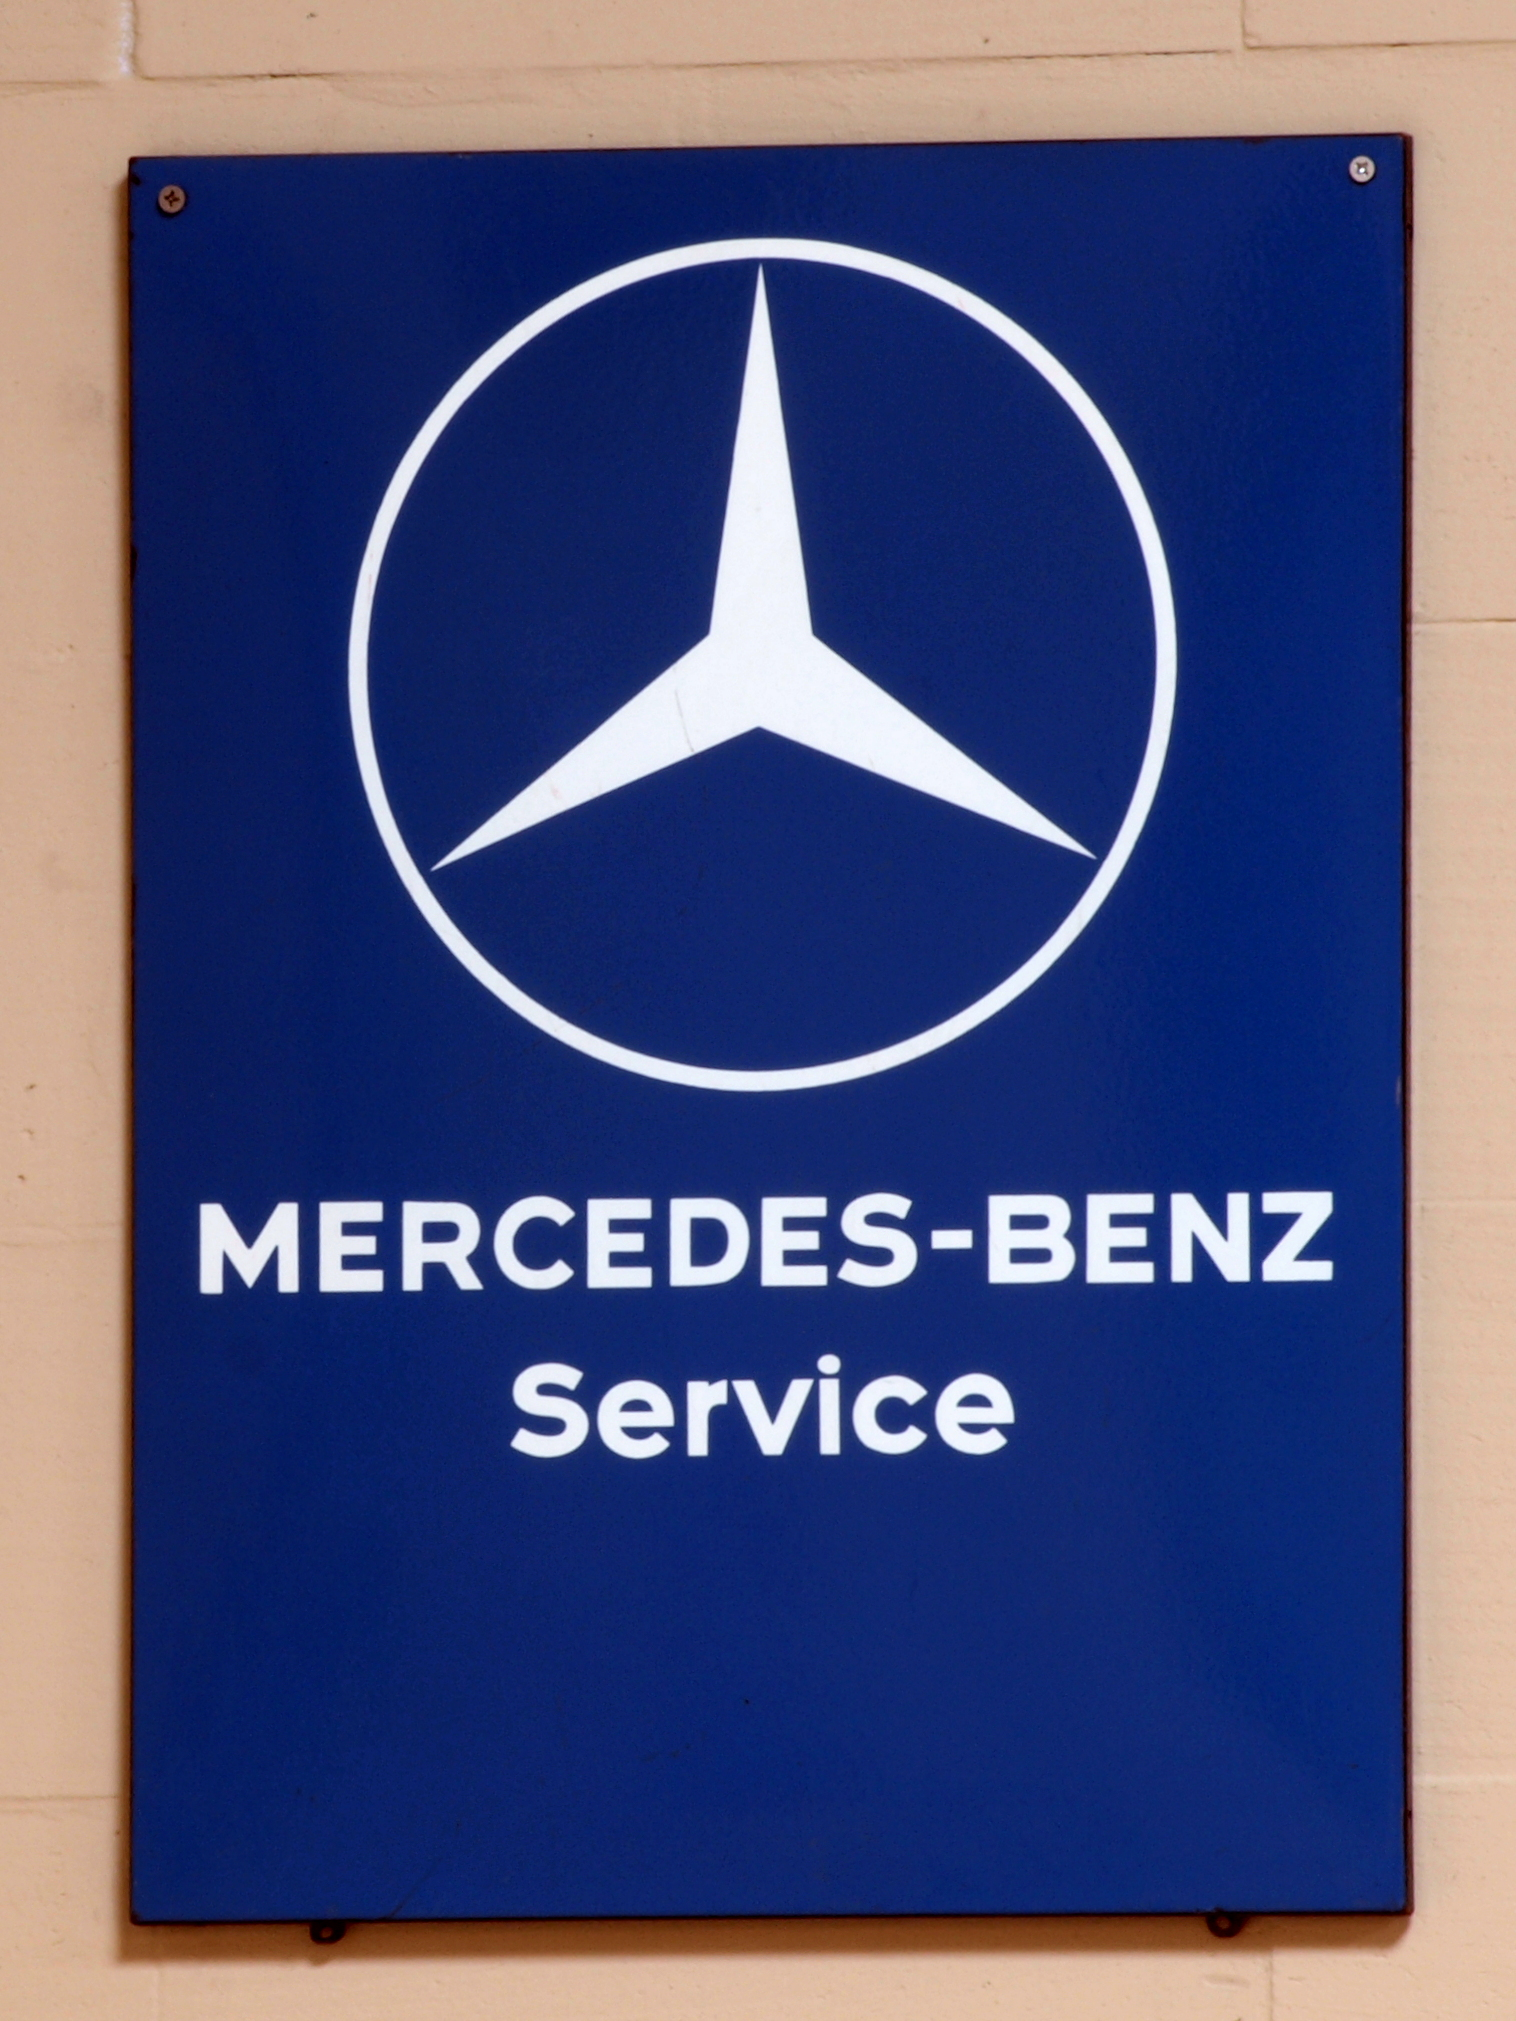 Mercedes Benz Van >> File:Mercedes-Benz Service, enamel advert sign at the den hartog ford museum pic-100.JPG ...